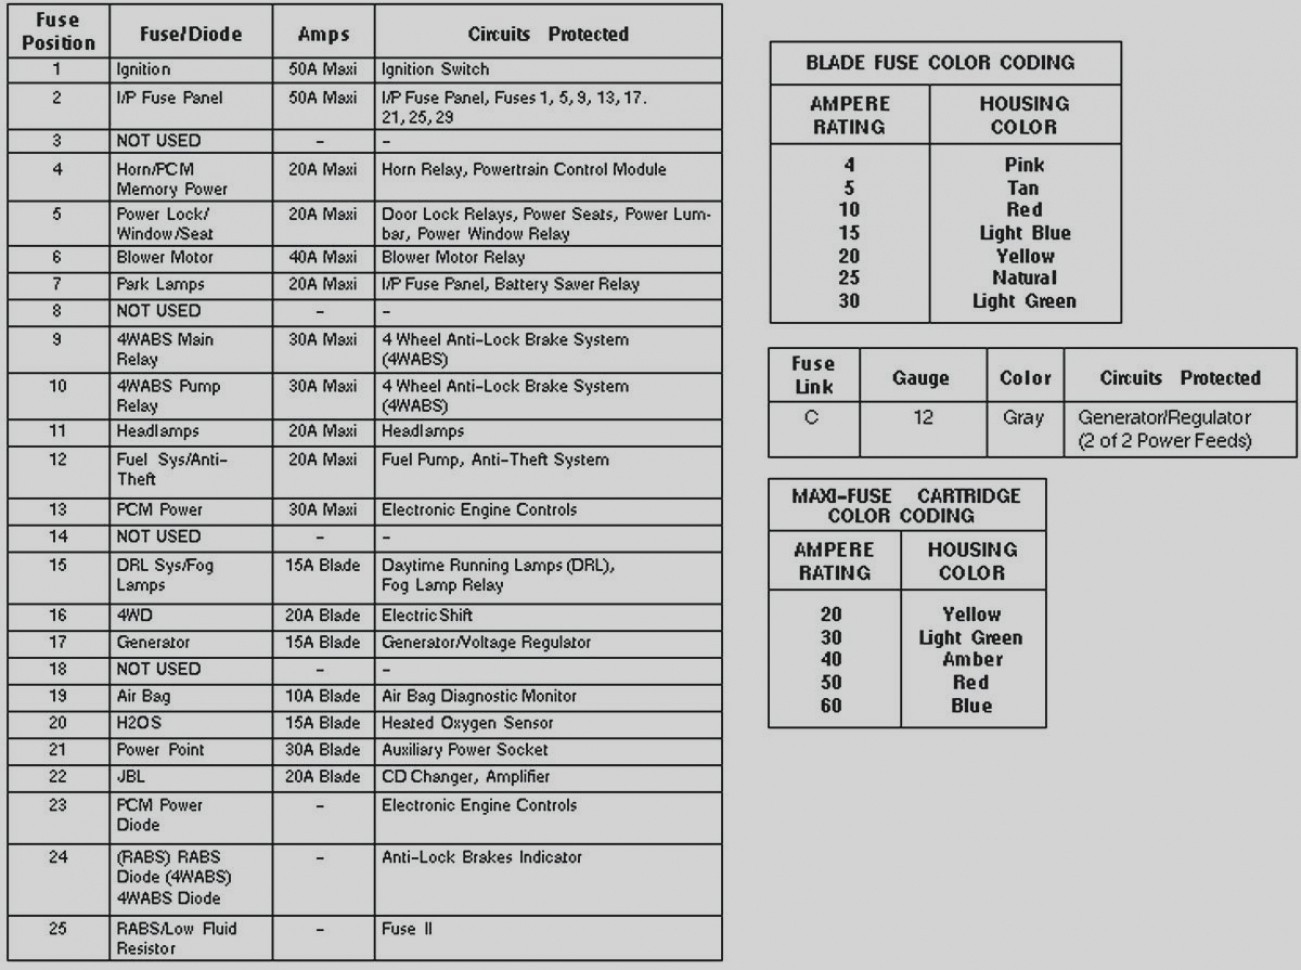 2000 ford explorer radio wiring diagram awesome wiring diagram image 1996 ford ranger radio wiring diagram 6 lenito and mihella me 1975 ford f 250 wiring cheapraybanclubmaster Images